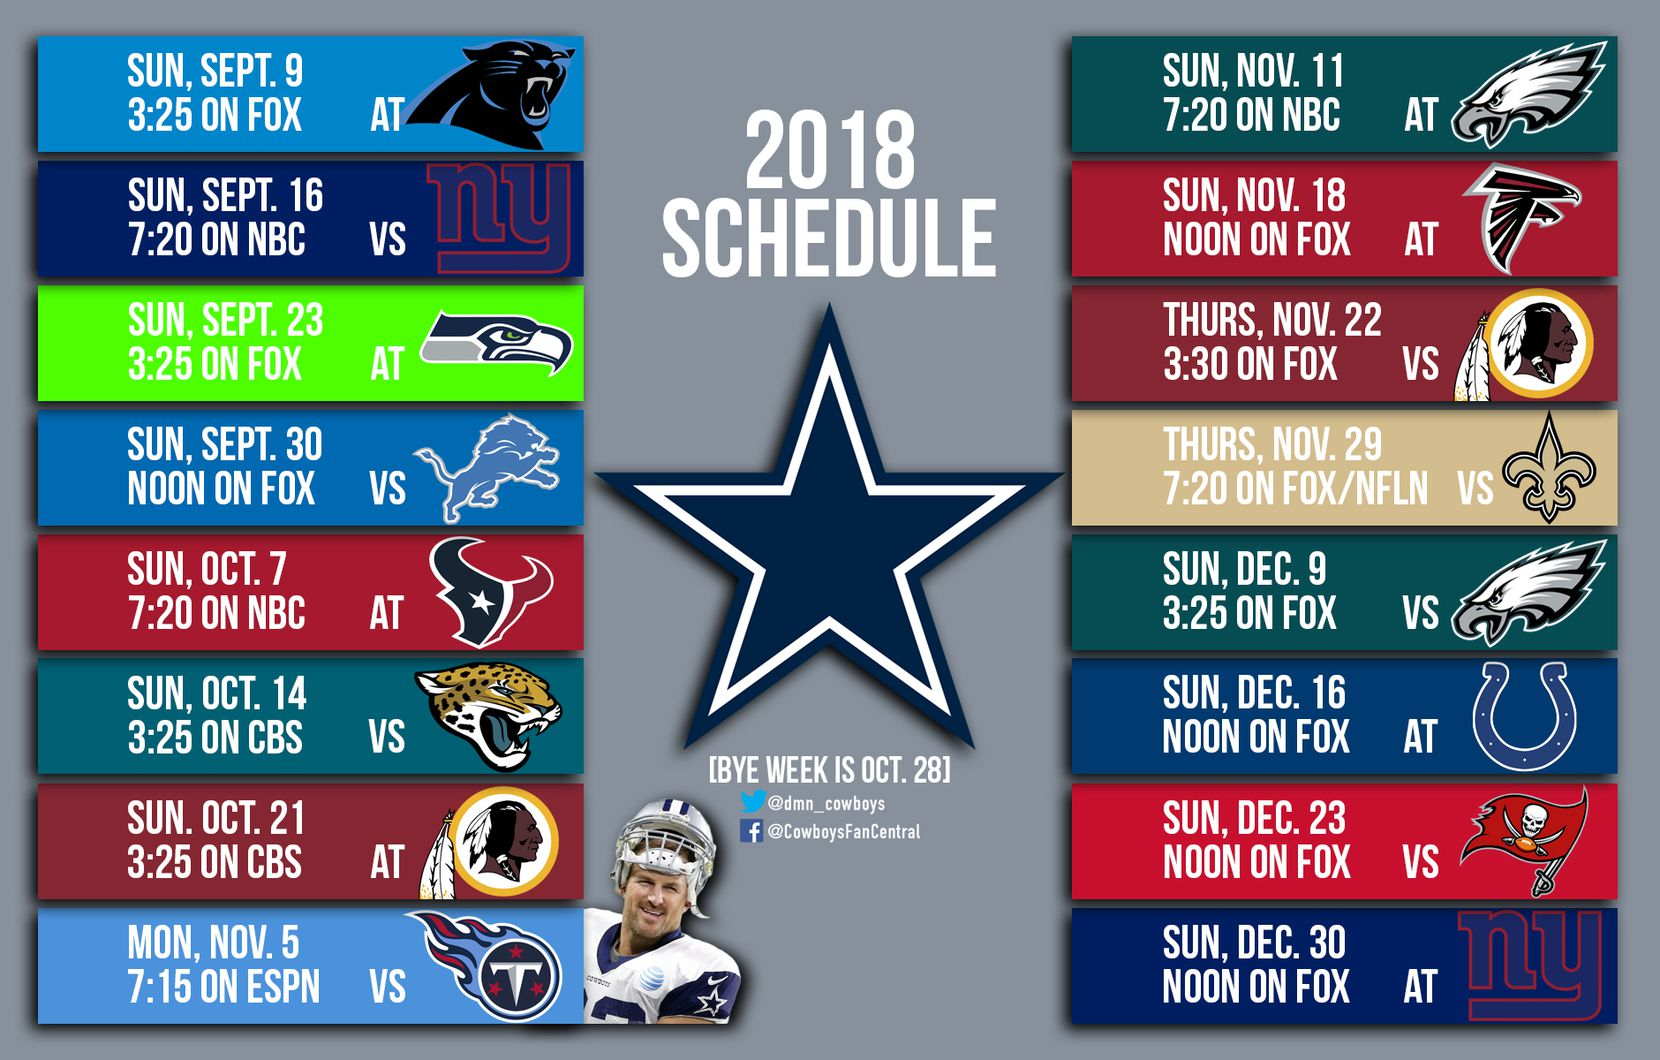 Dallas' 2018 schedule.